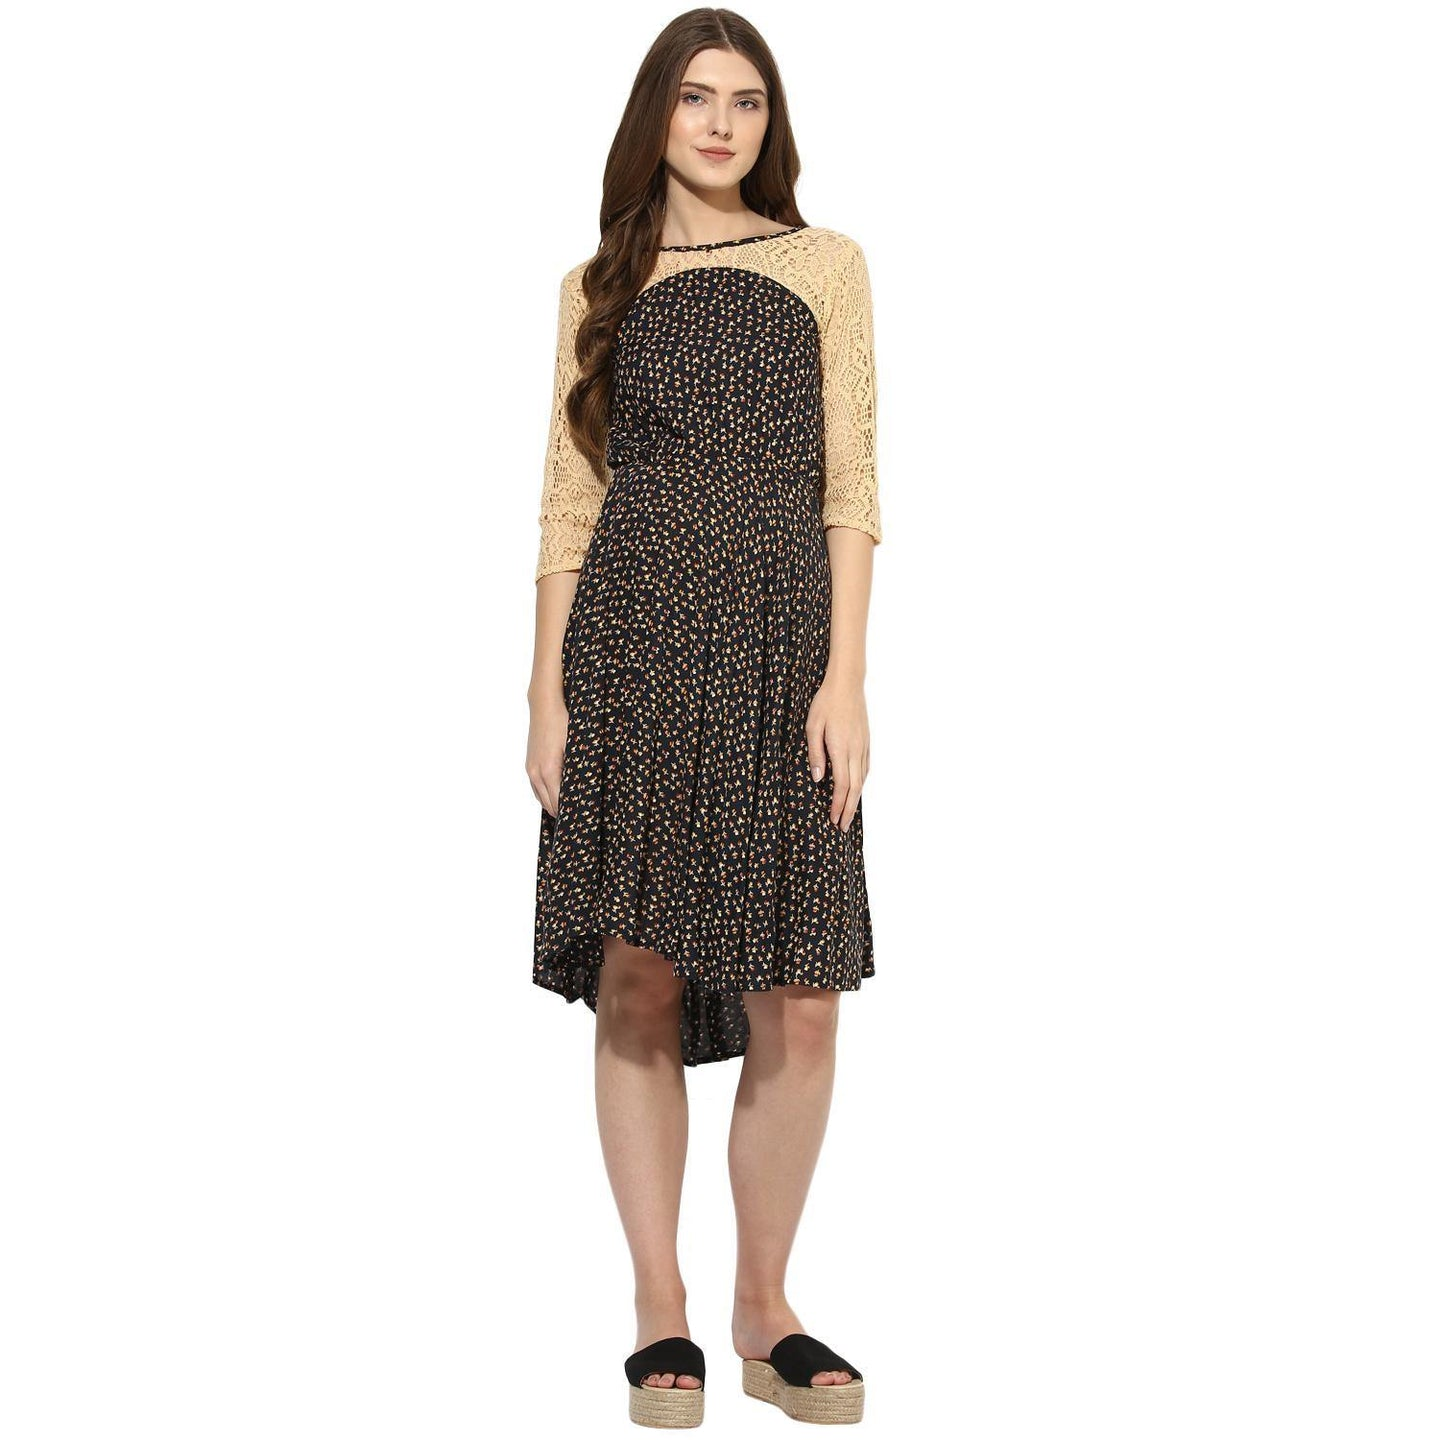 Black Fit & Flare Maternity Dress w/ Floral Pattern, Made of Lace & Rayon- Mine4Nine